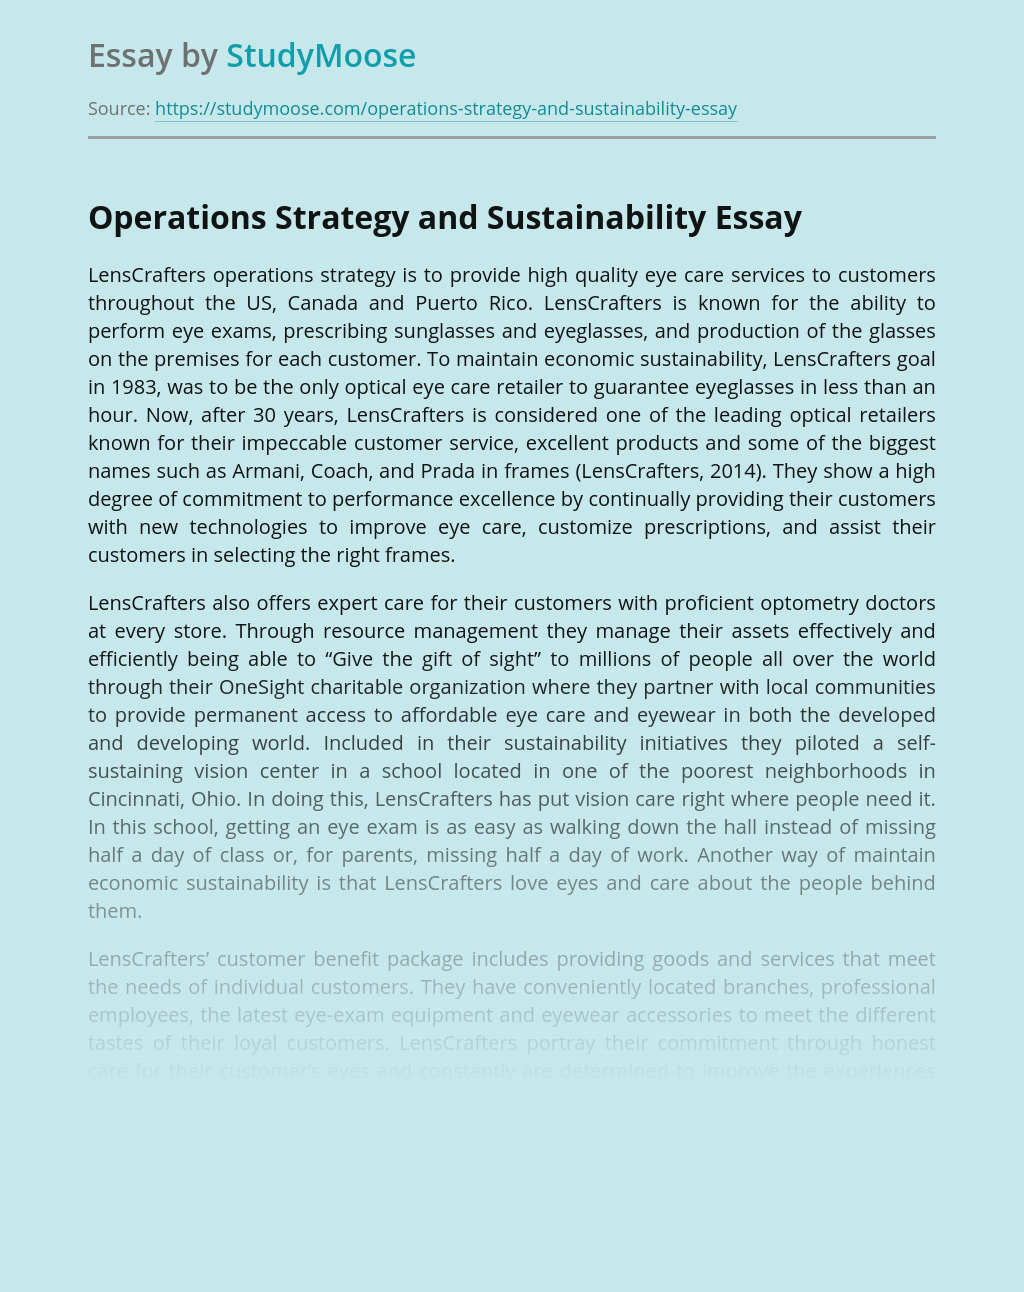 Operations Strategy and Sustainability